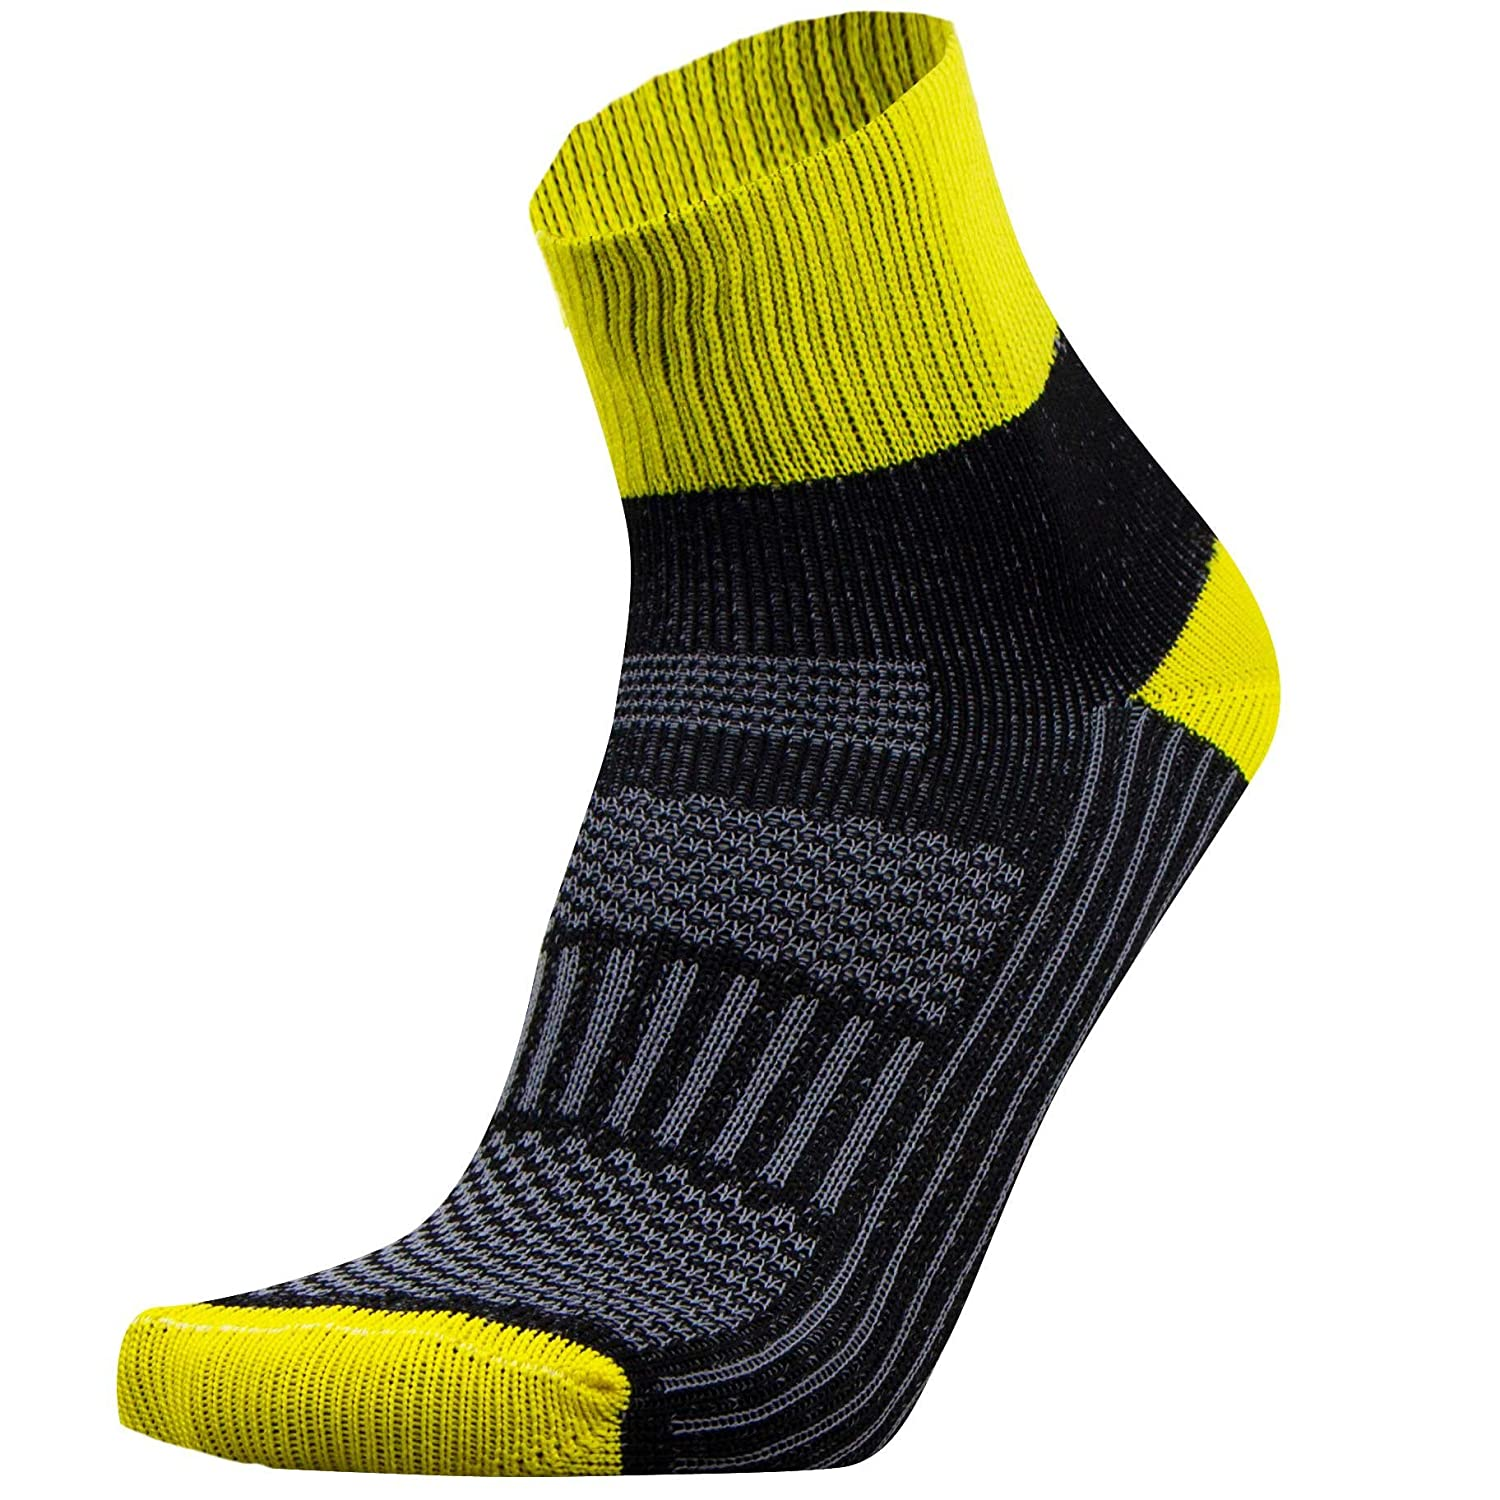 Moisture Wicking Comfortable SharpeZone Cycling Socks Athletic Socks for Cycling